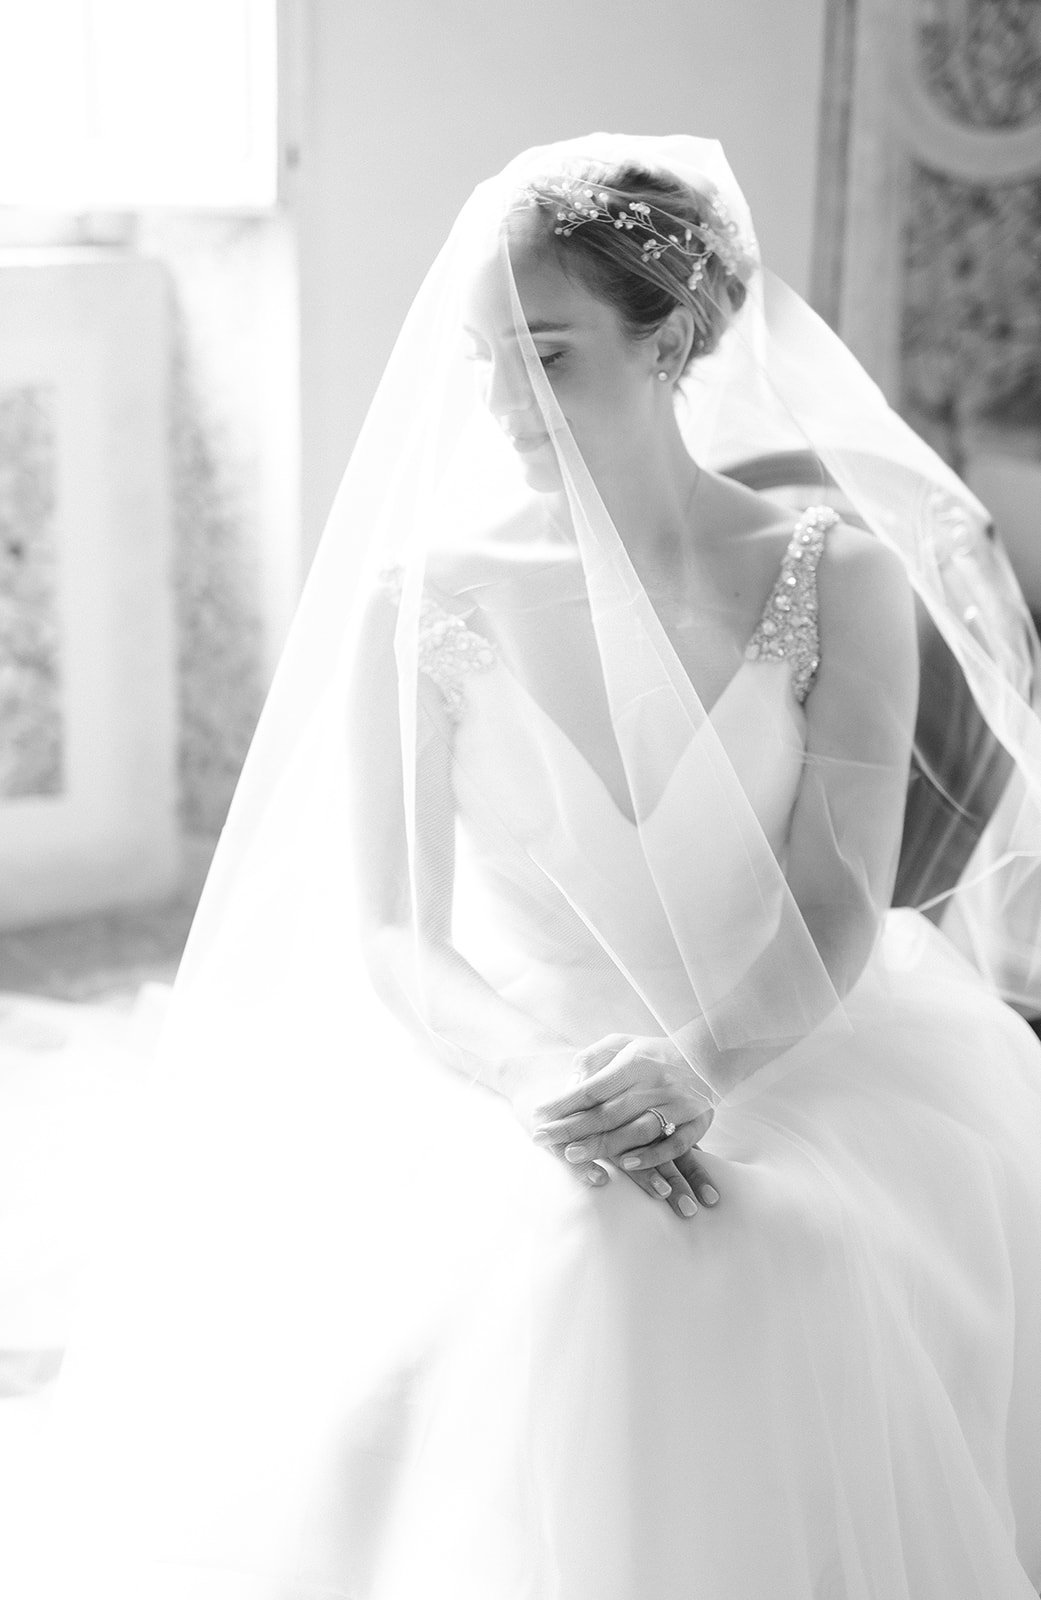 Mike___Juli_LA_s_Favs_-Bridal_Portraits-19